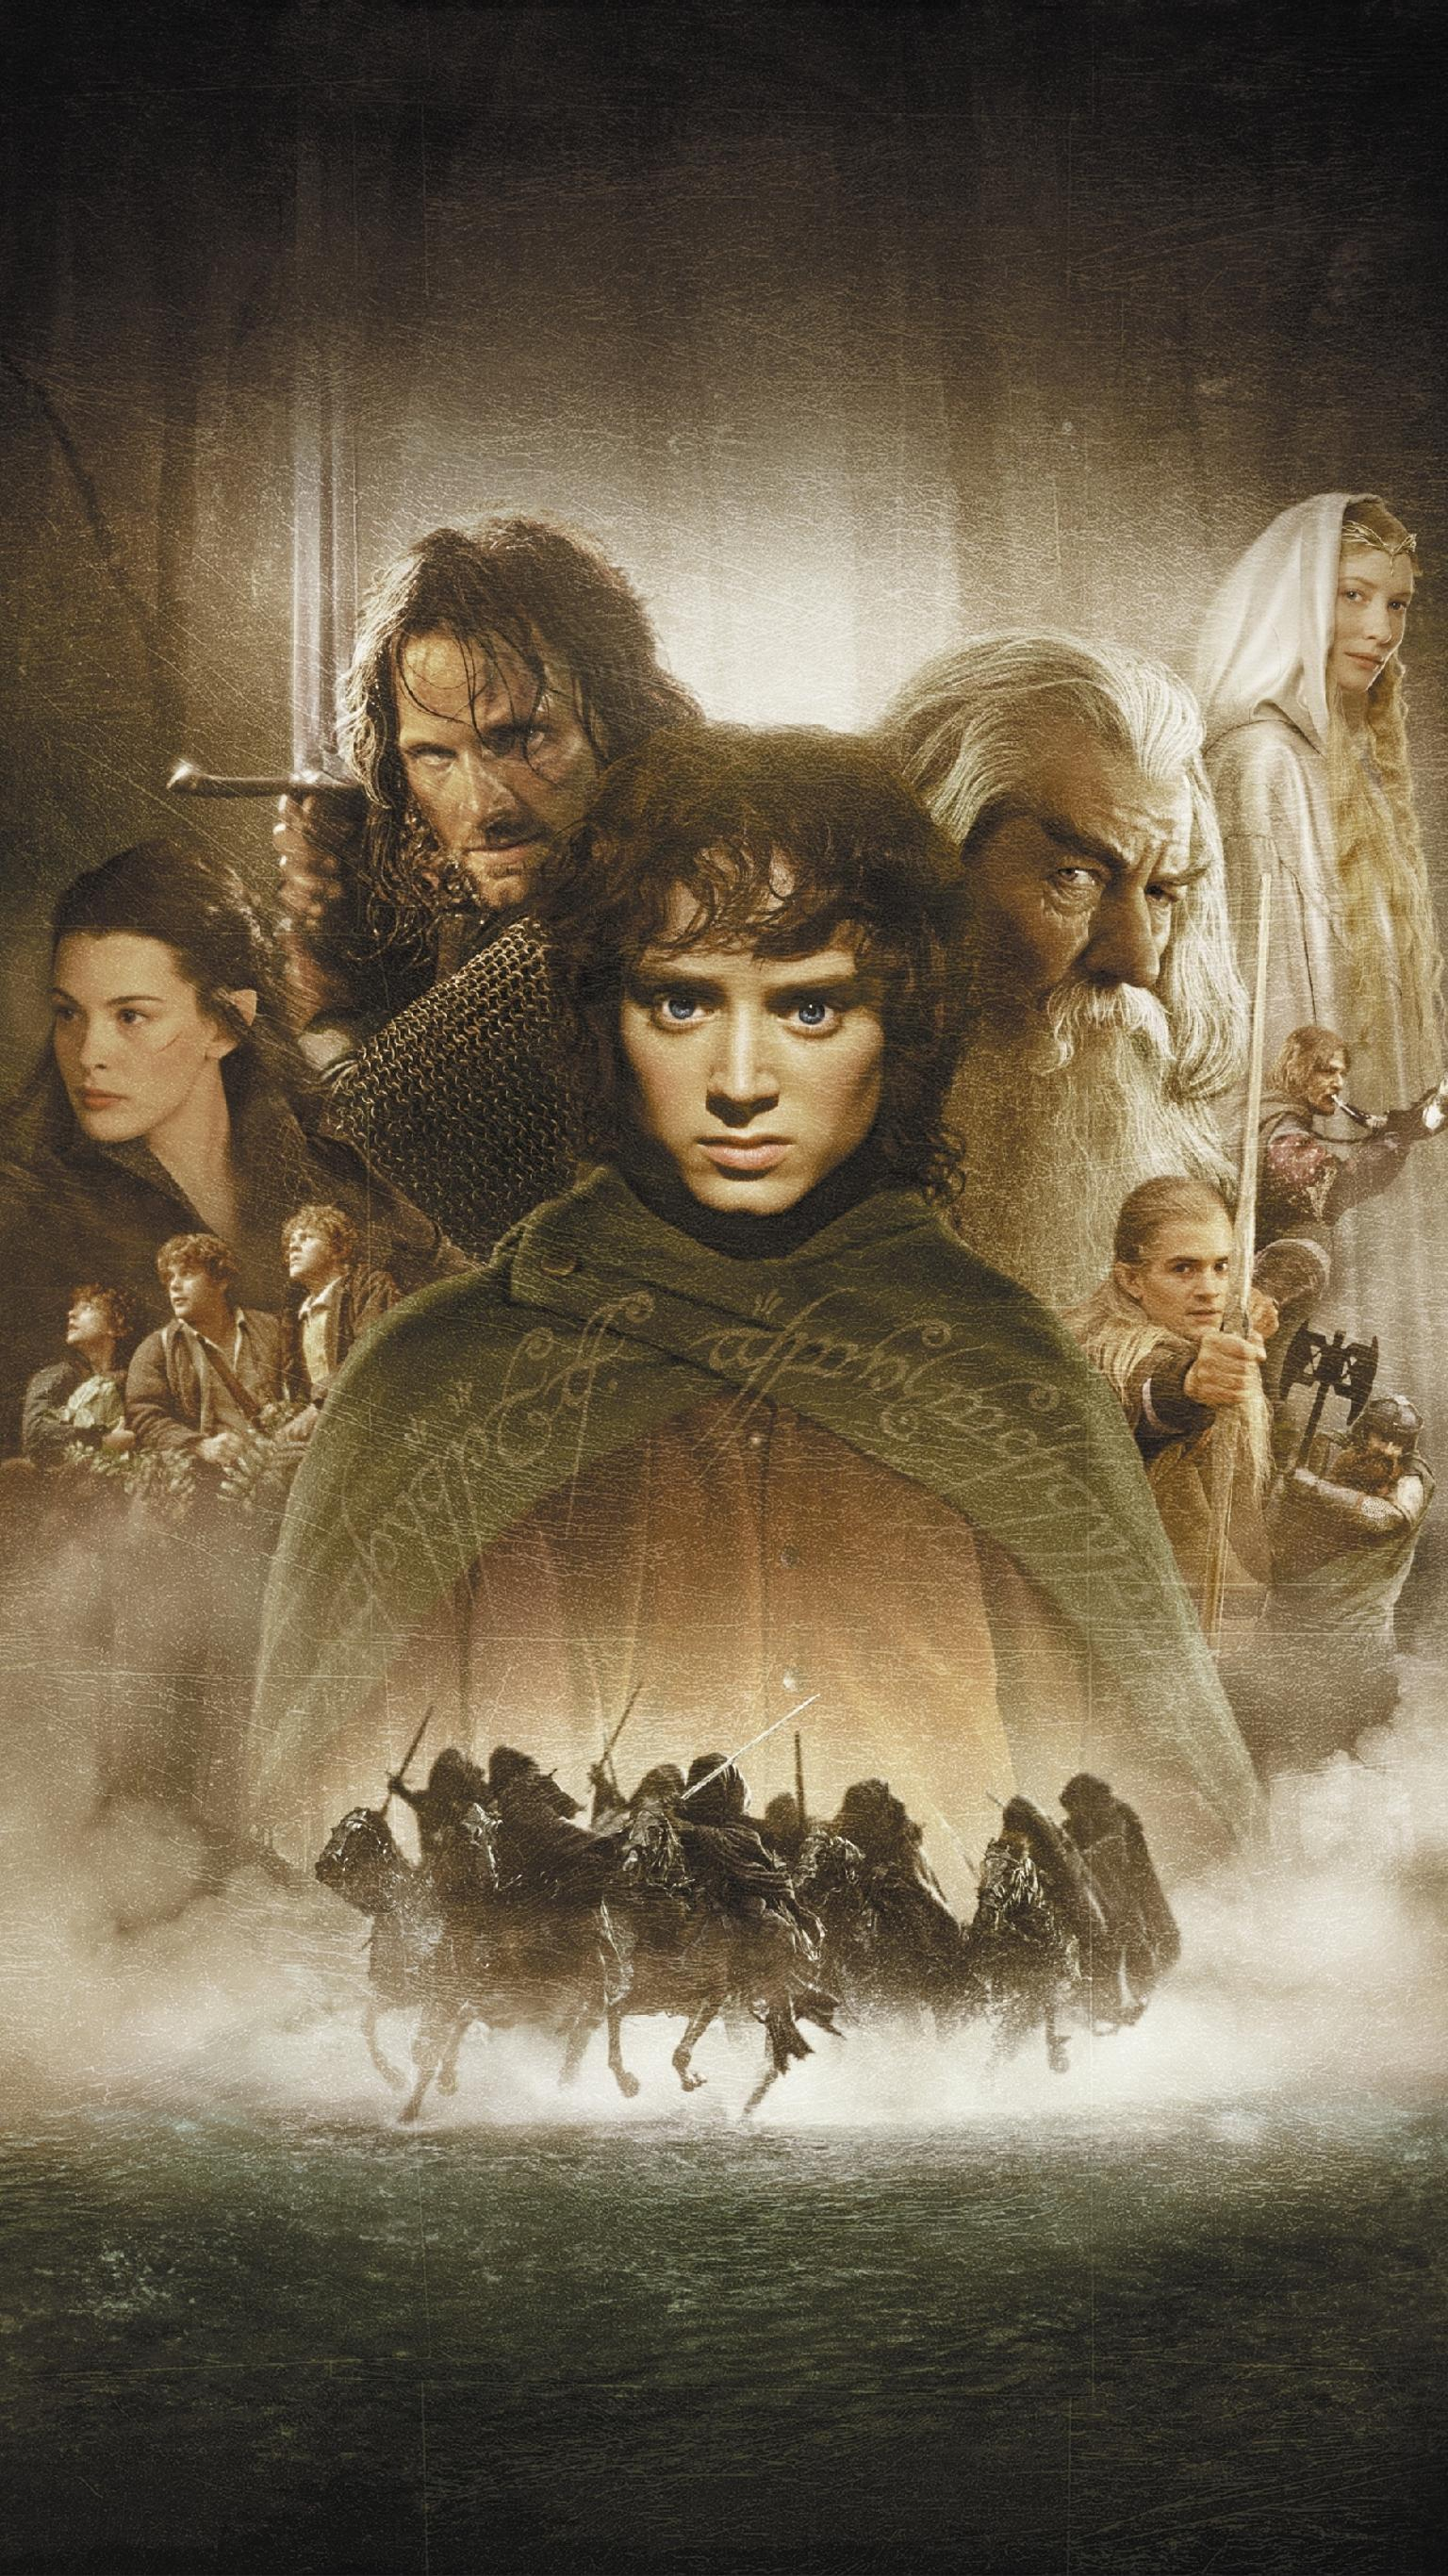 Lord Of The Ring Wallpaper : wallpaper, Phone, Wallpapers, Backgrounds, WallpaperAccess